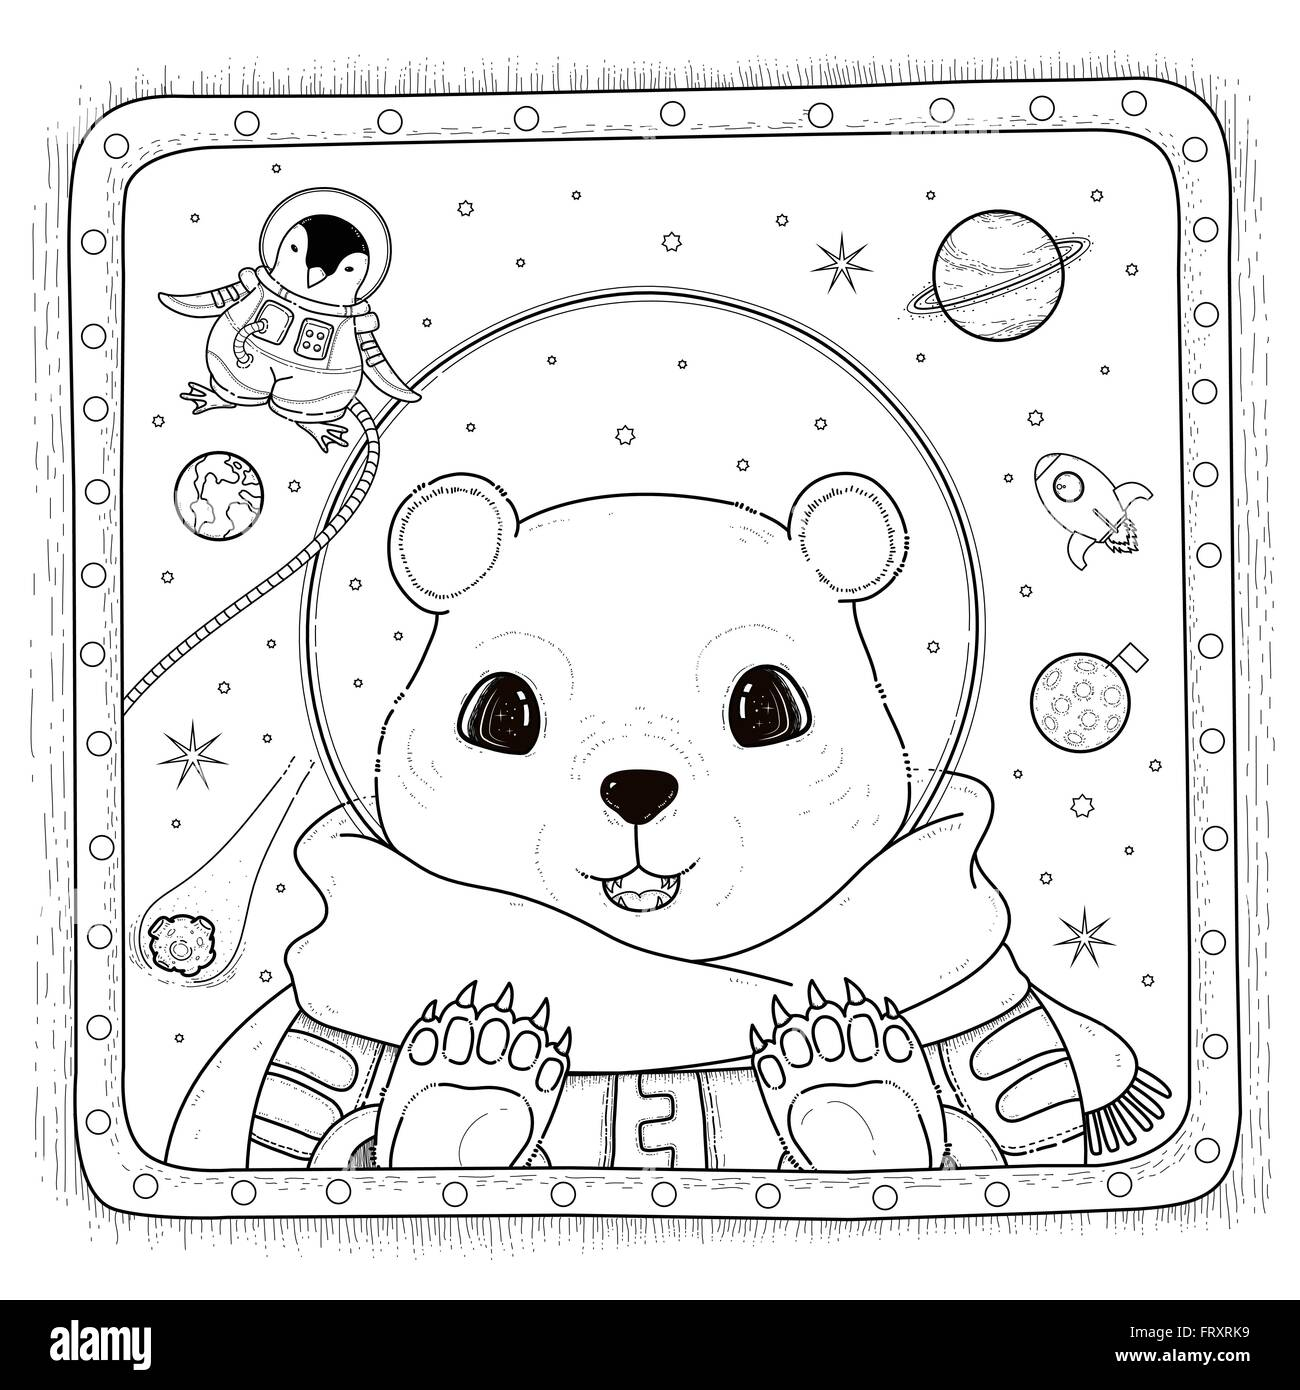 adorable polar bear astronaut coloring page stock vector